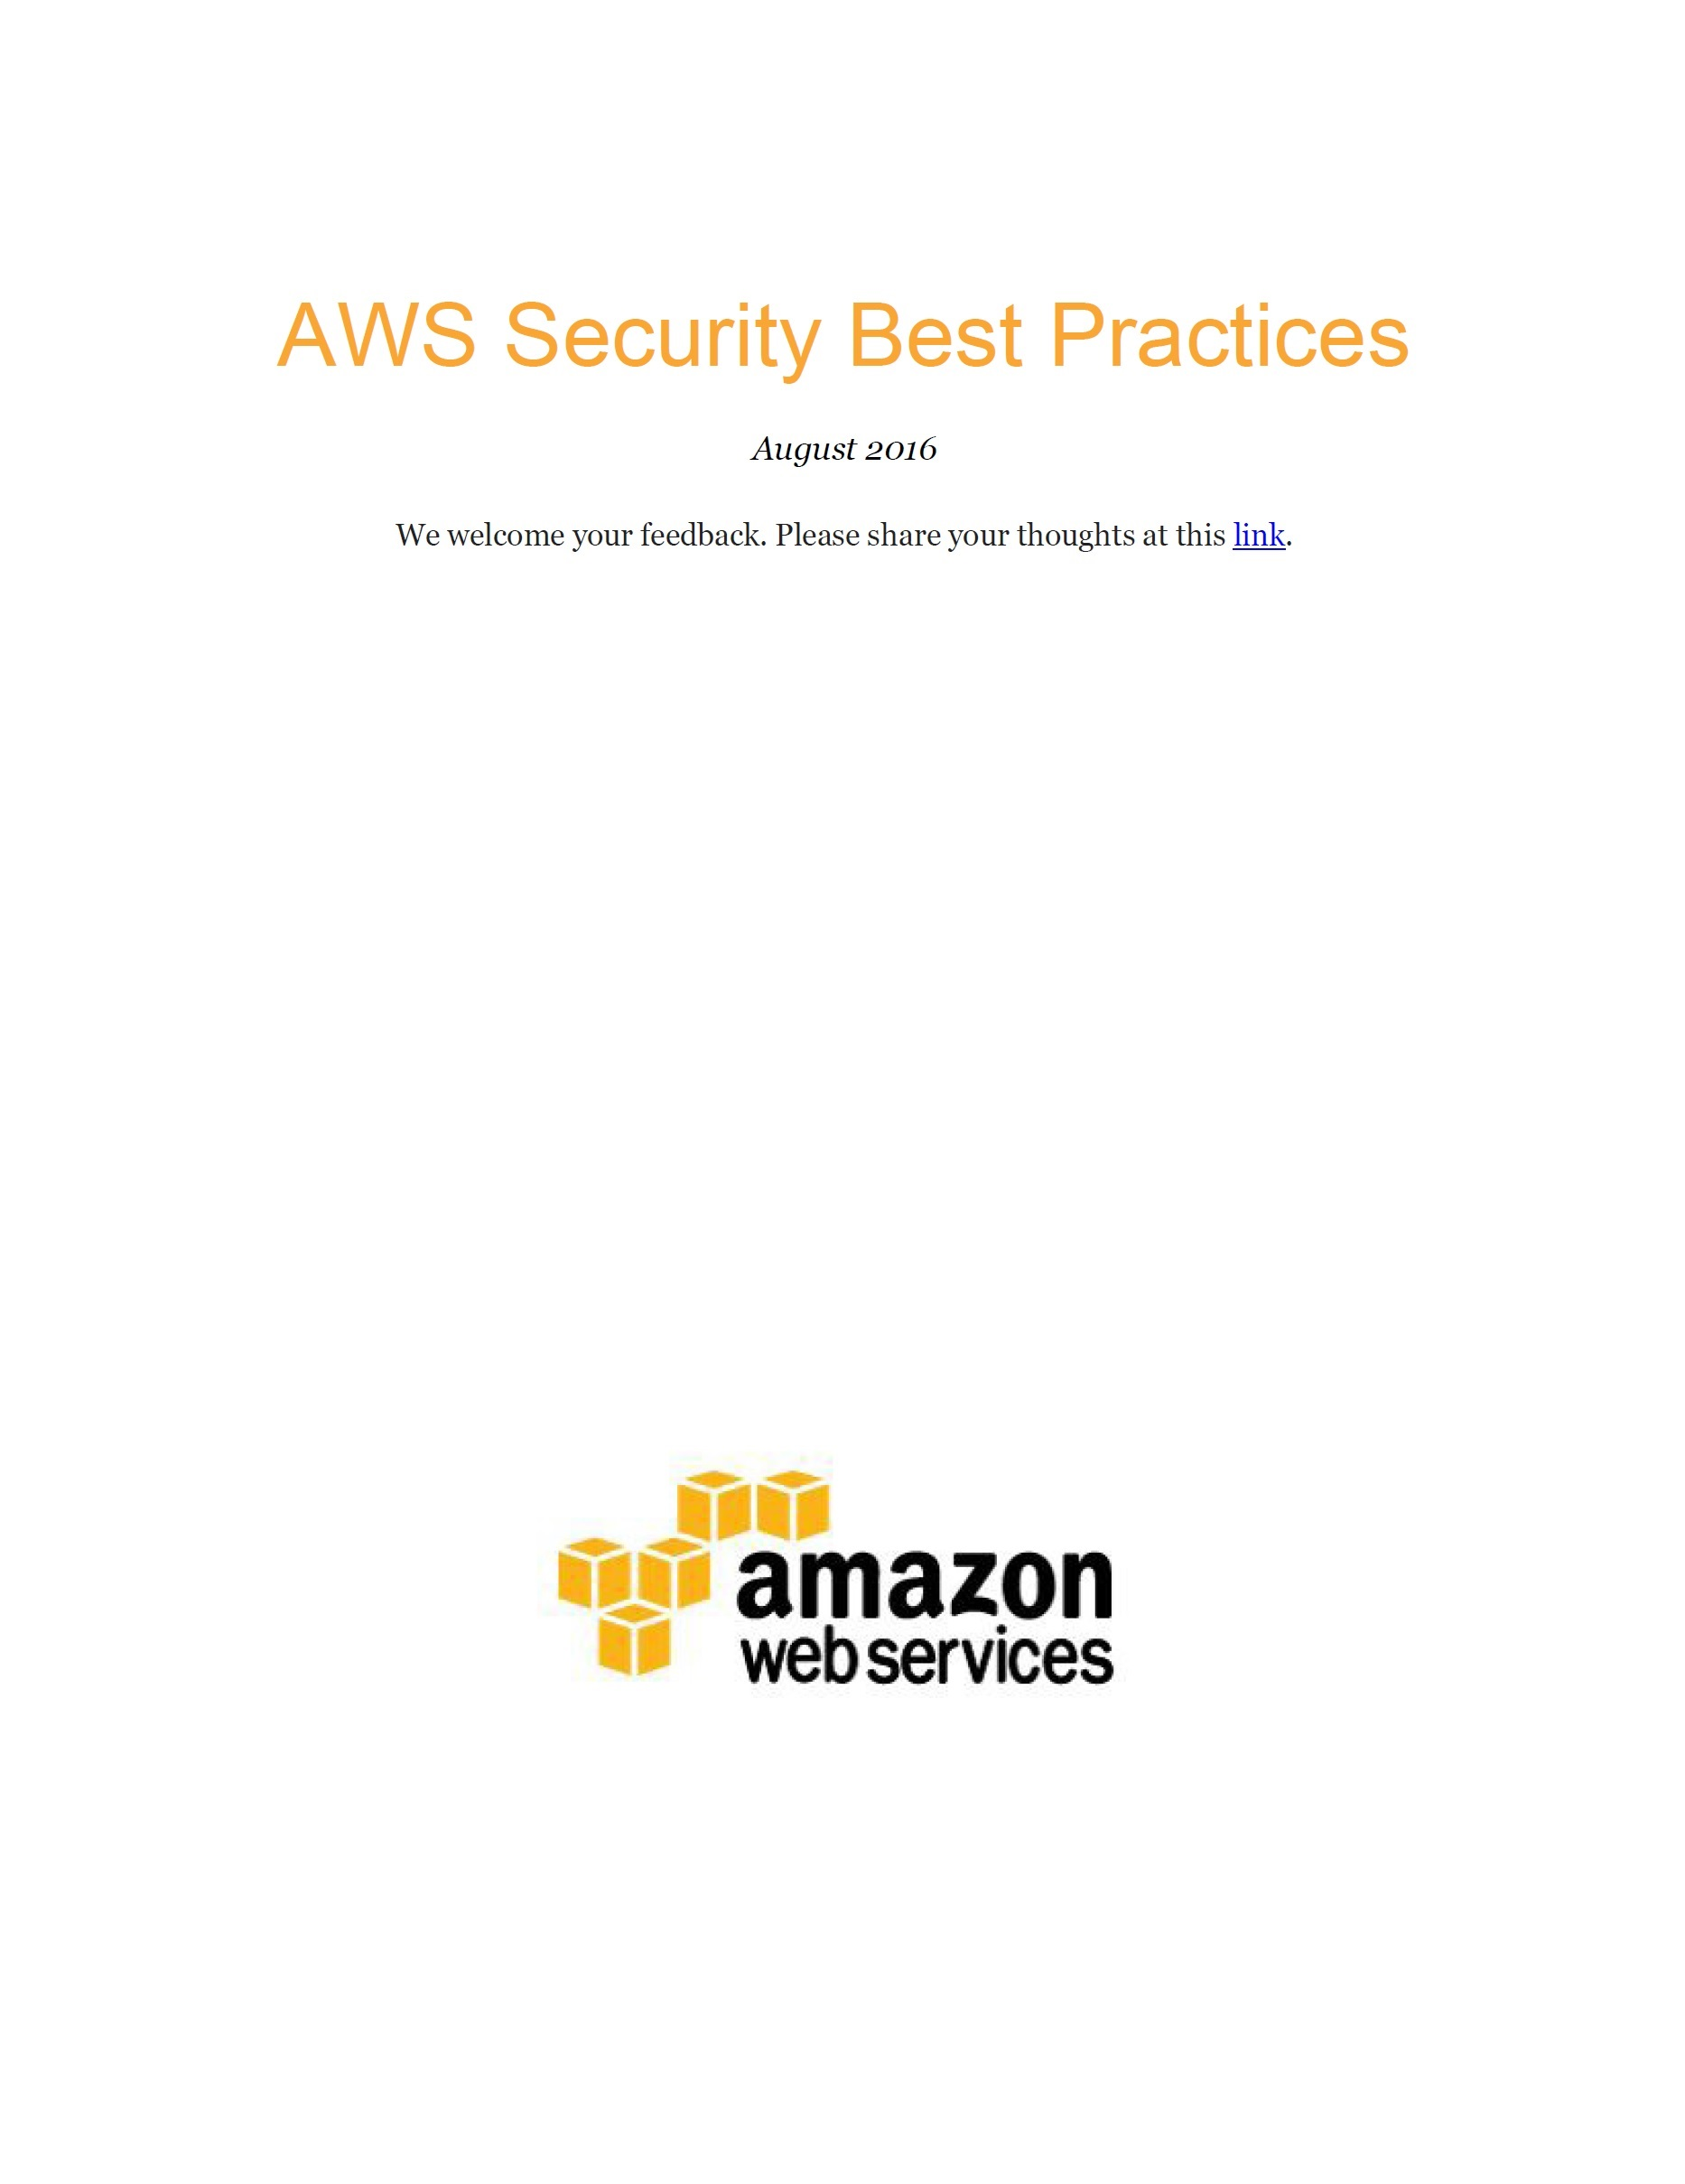 AWS Security Best Practices, 2016